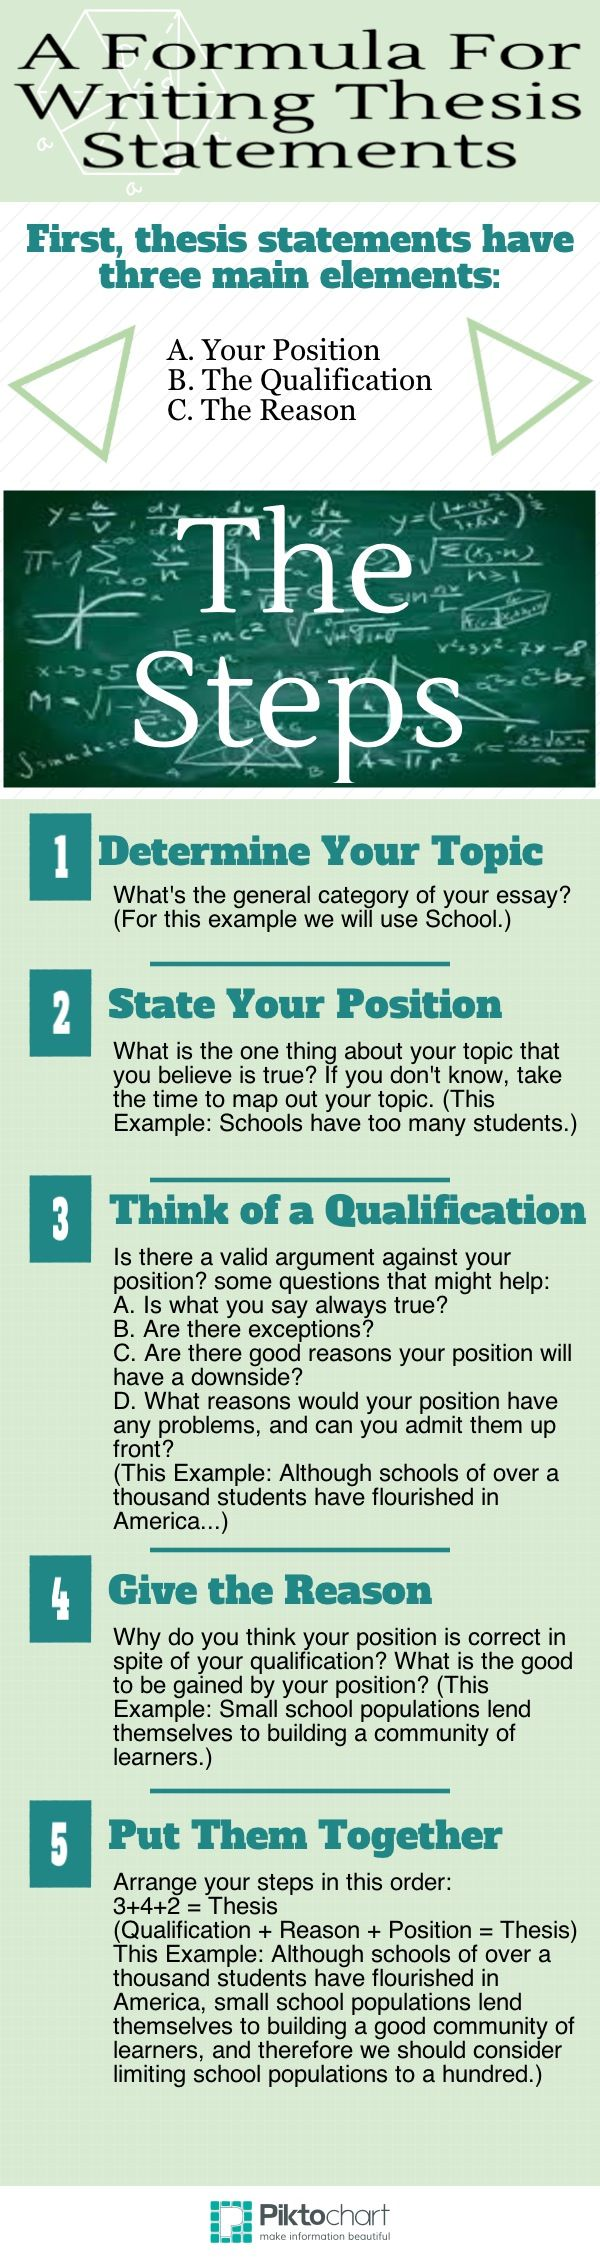 Example Of An English Essay Thesis Statements  Piktochart Infographic Persuasive Essay Papers also Examples Of Argumentative Thesis Statements For Essays Best  Thesis Writing Ideas On Pinterest  Essay Words Creative  High School Entrance Essays